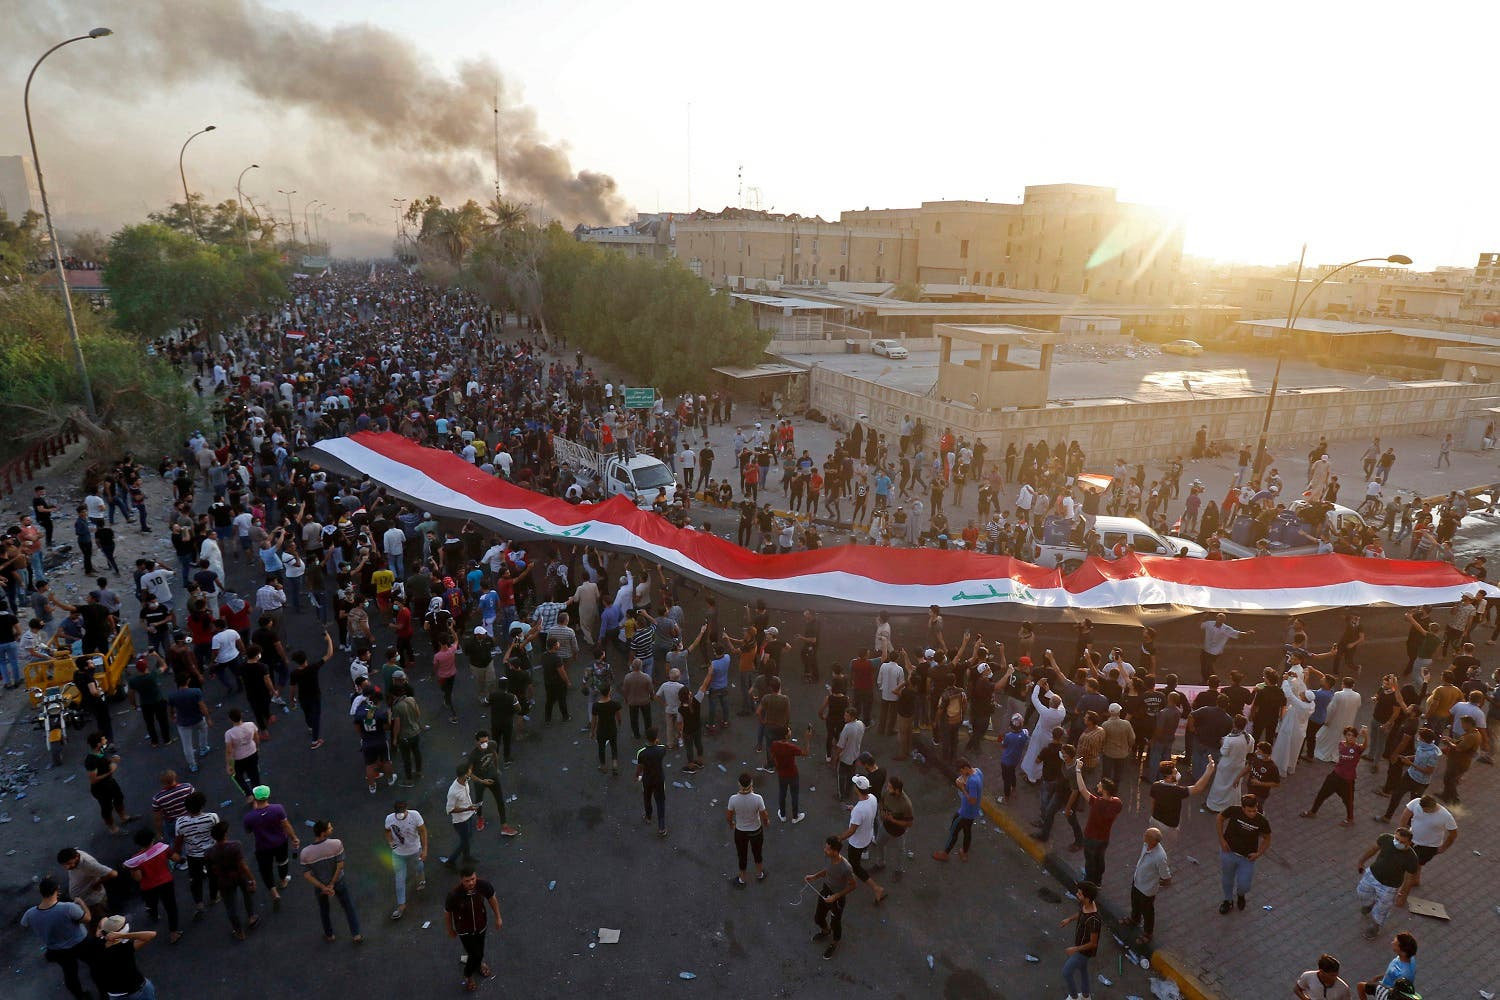 Iraqi protesters wave their national flag in front of official buildings as they demonstrate against the government and the lack of basic services in Basra on September 6, 2018. (AFP)